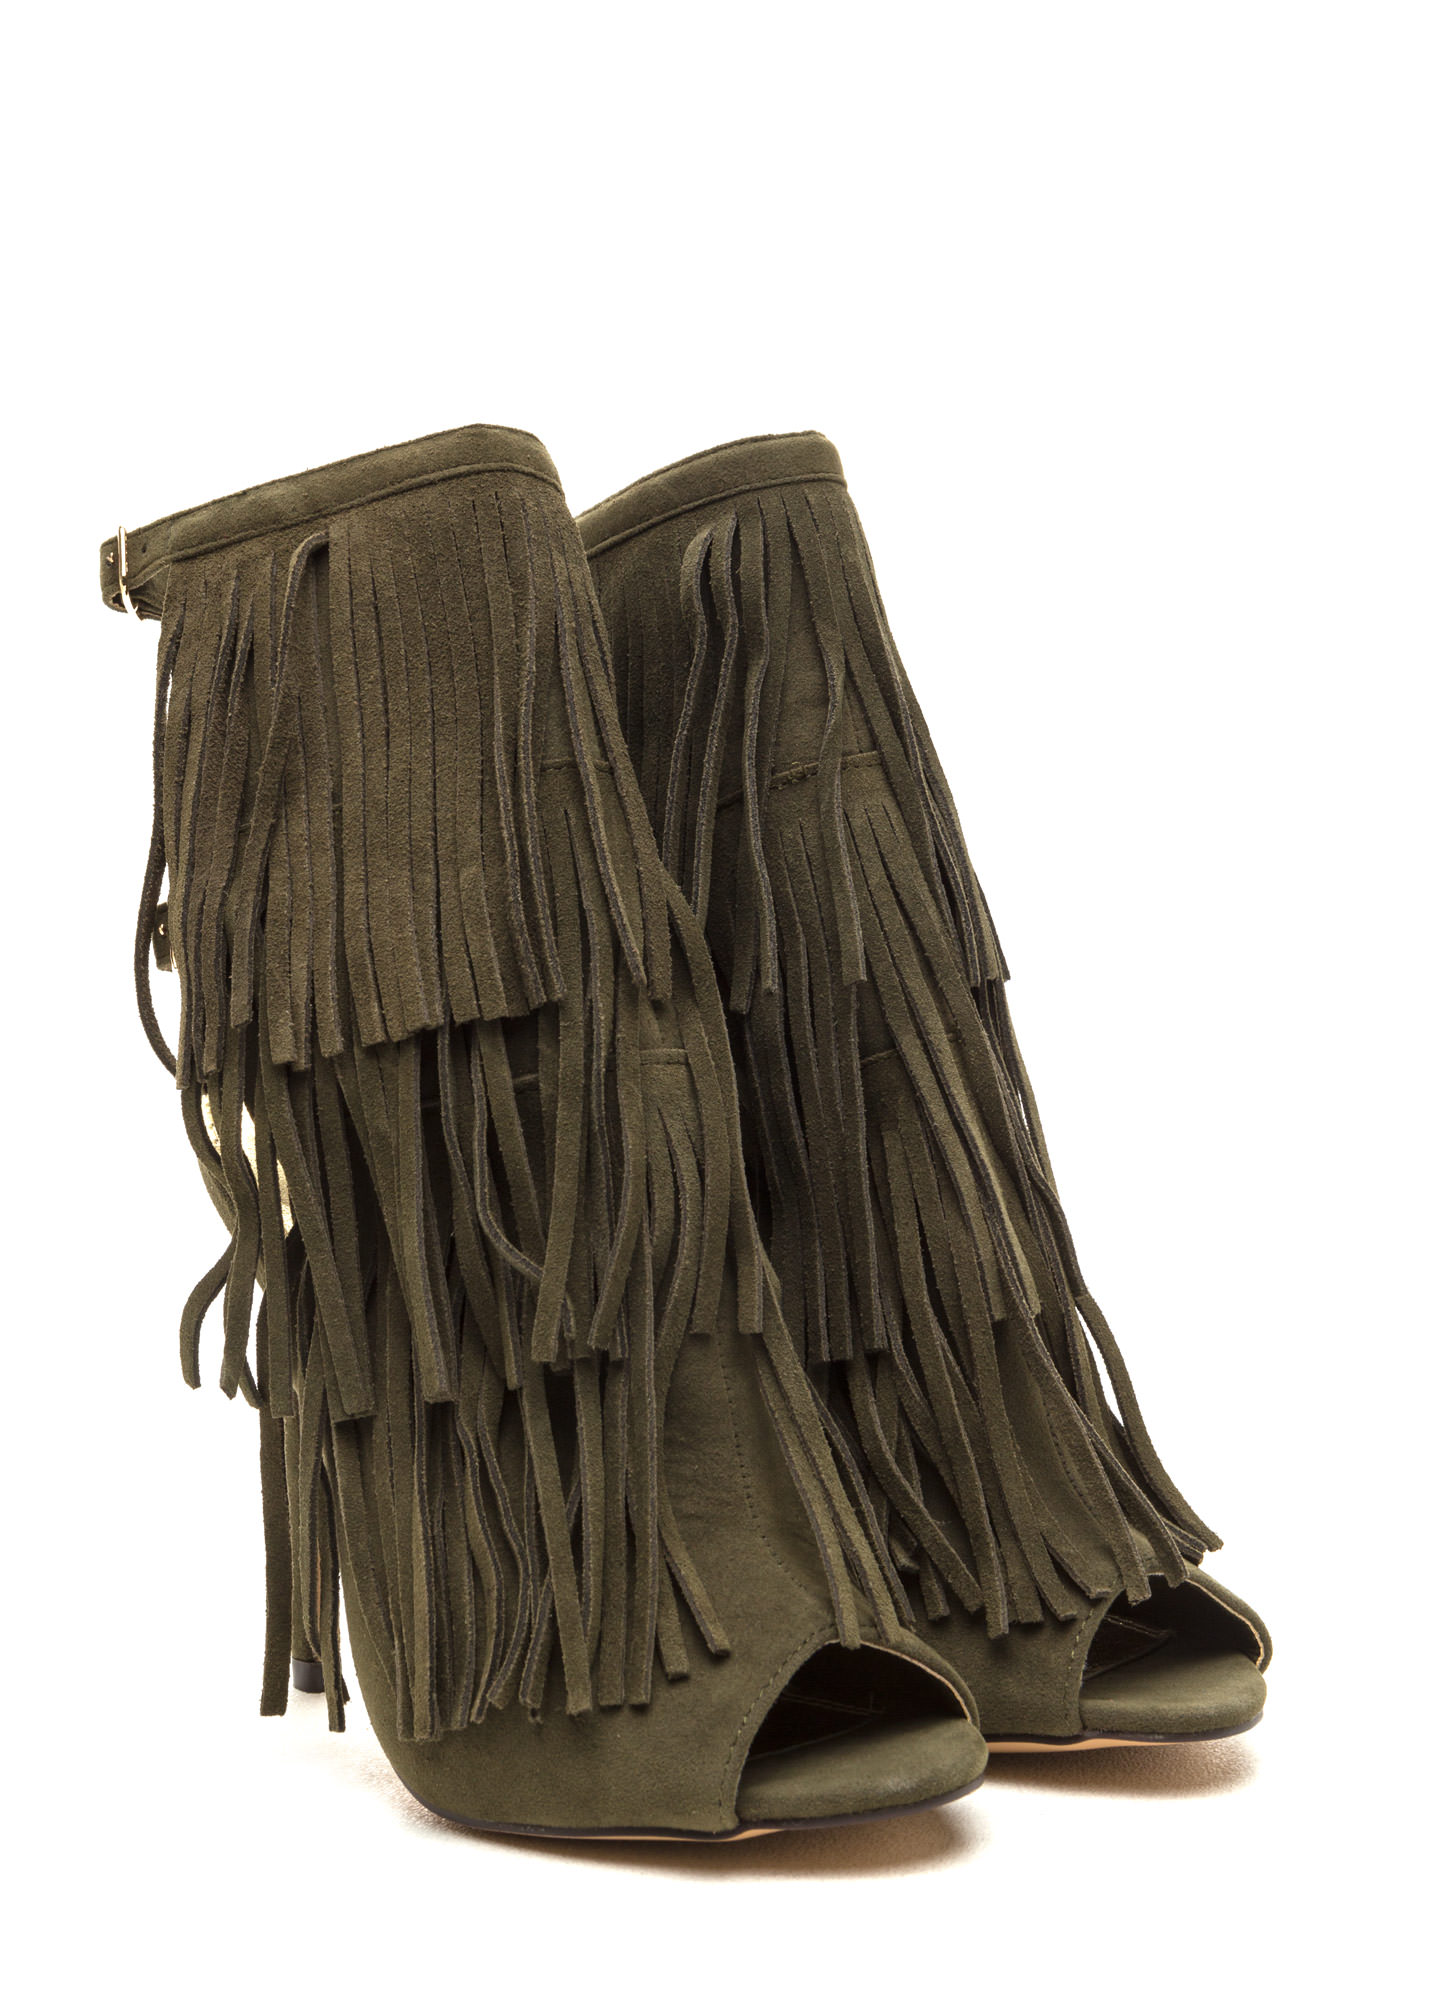 Fringe Frenzy Faux Suede Booties OLIVE